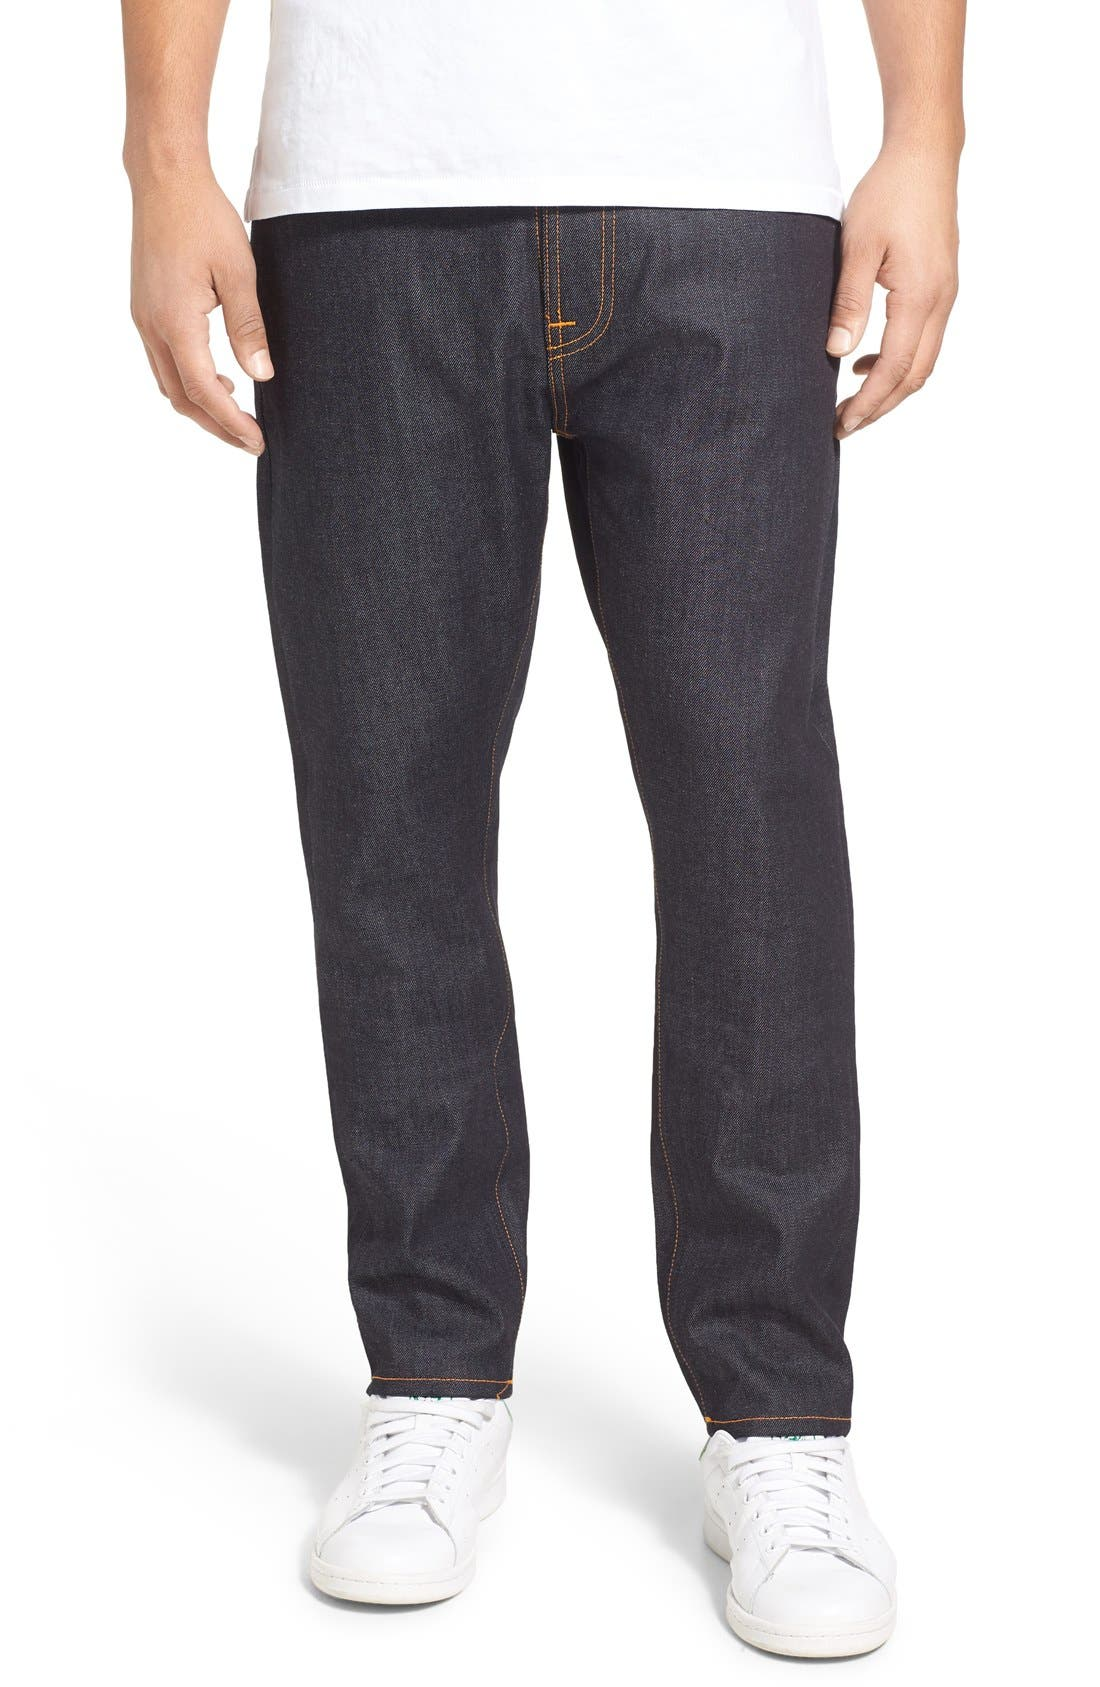 'Brute Knut' Slouchy Slim Fit Selvedge Jeans,                             Main thumbnail 1, color,                             411